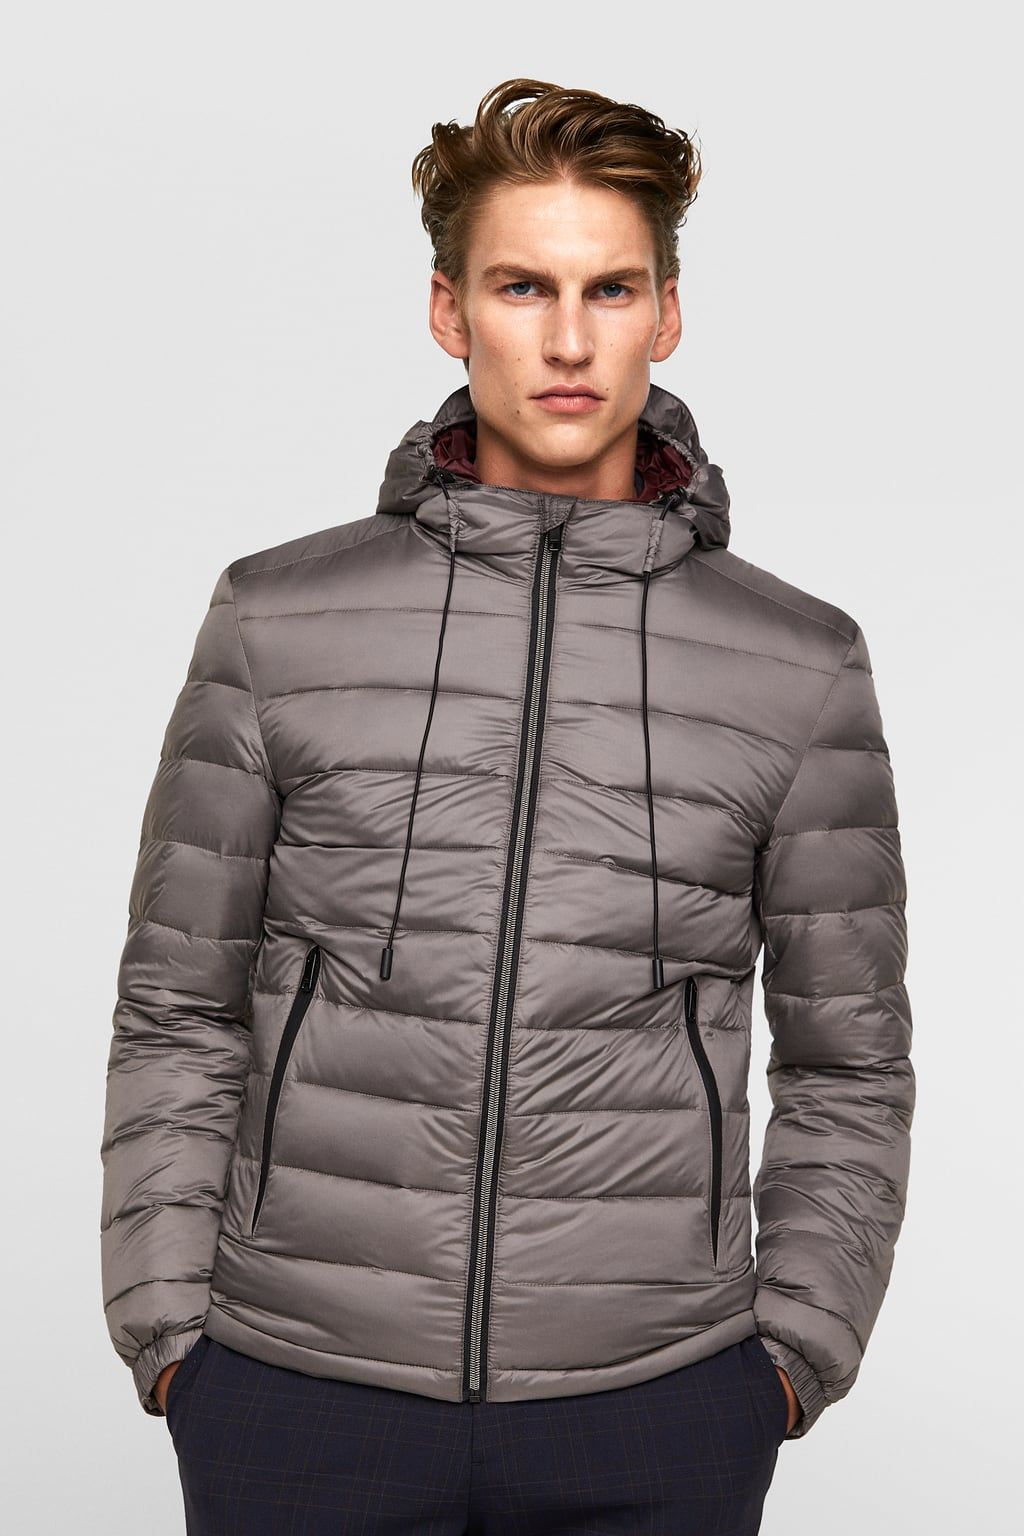 Down puffer jacket with hood | Hooded jacket, Puffer ...